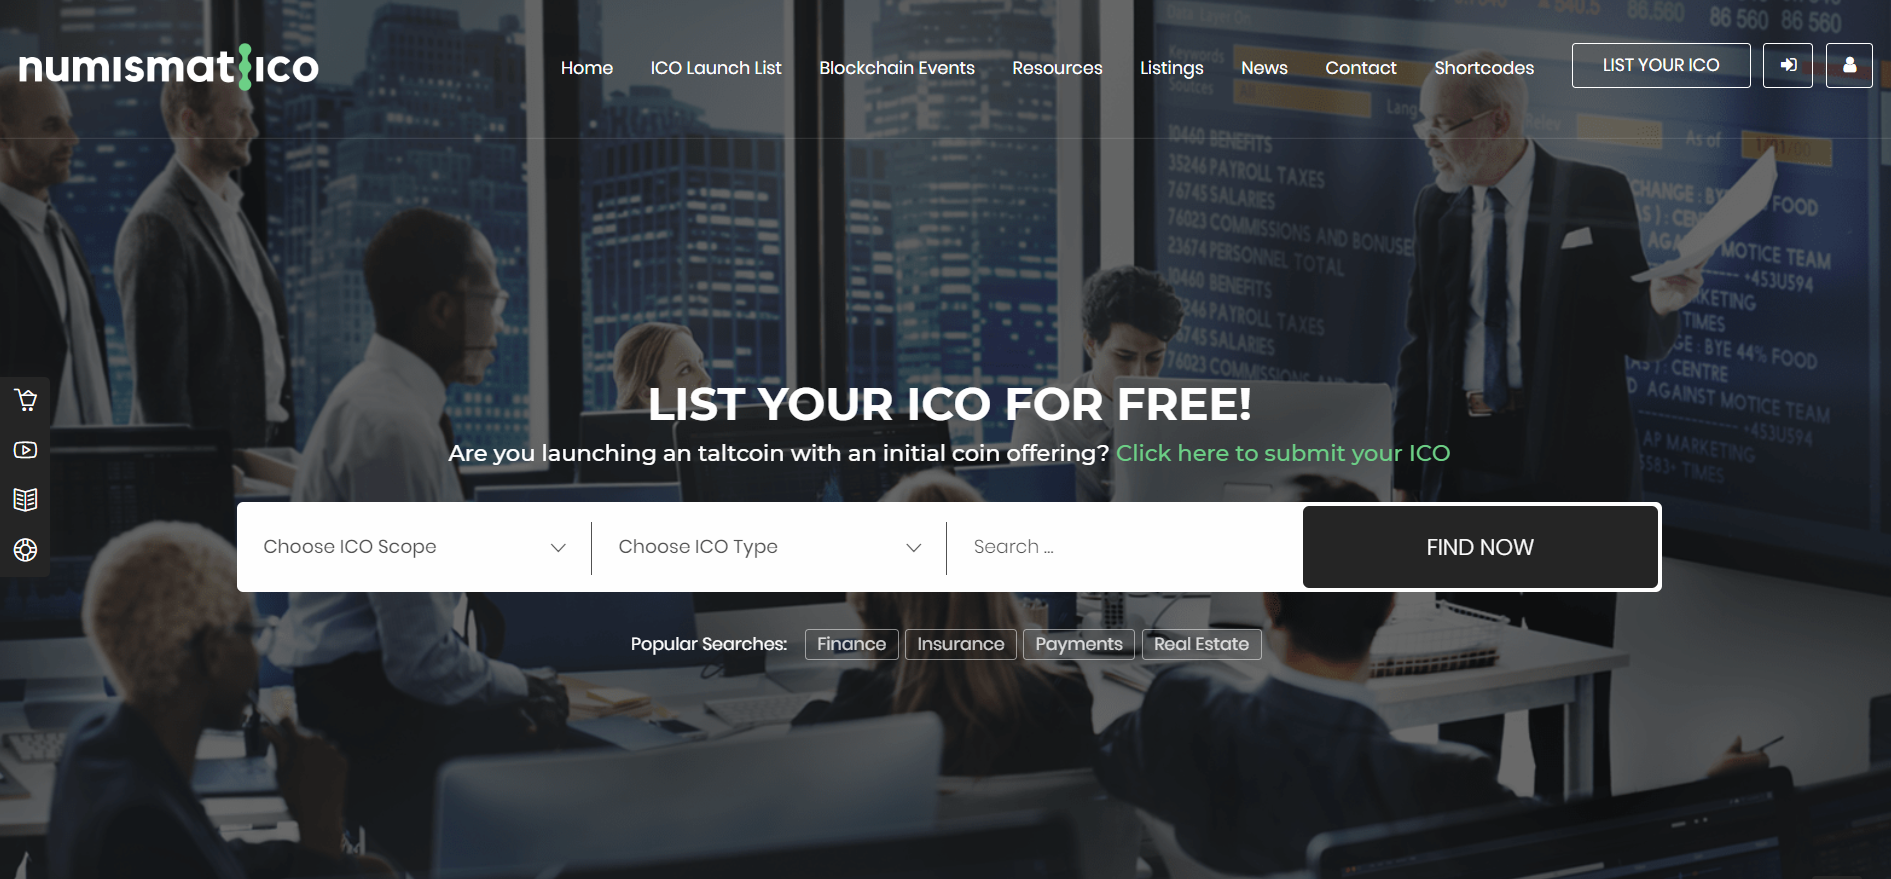 3. Numismatico - Crytocurrency Directory & Listings WordPress Theme